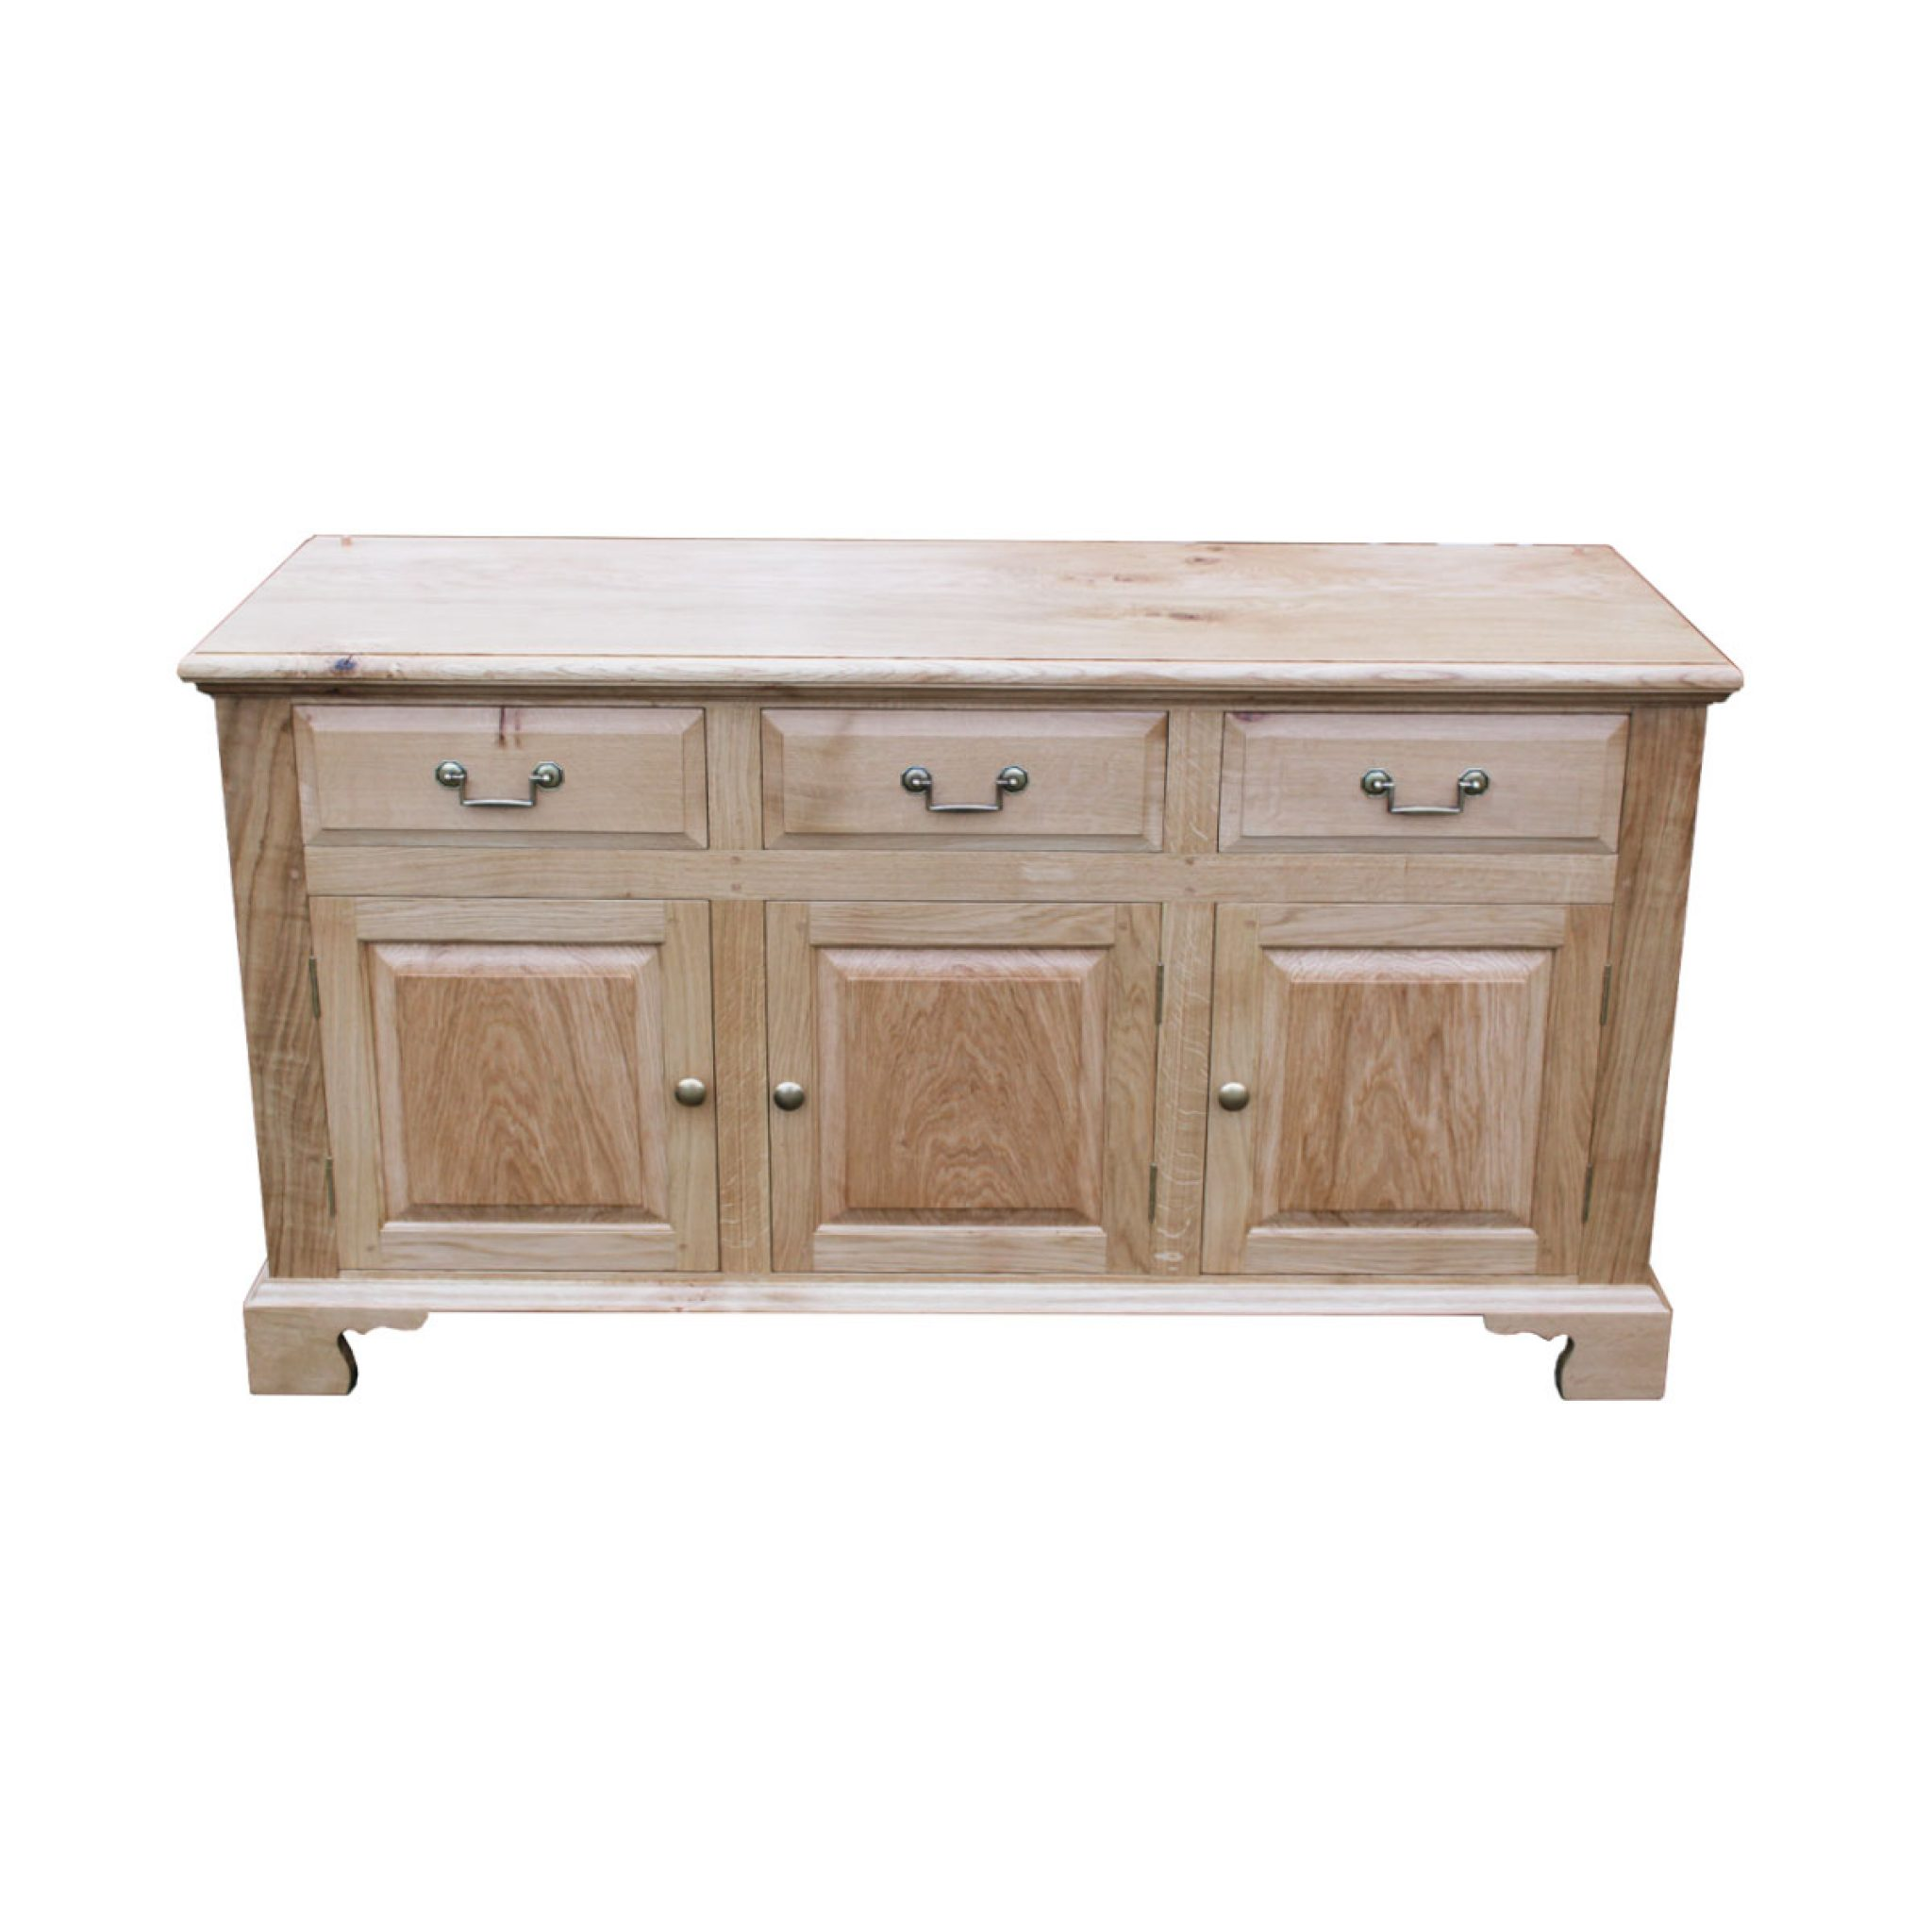 Handmade Oak Furniture Buckhaven